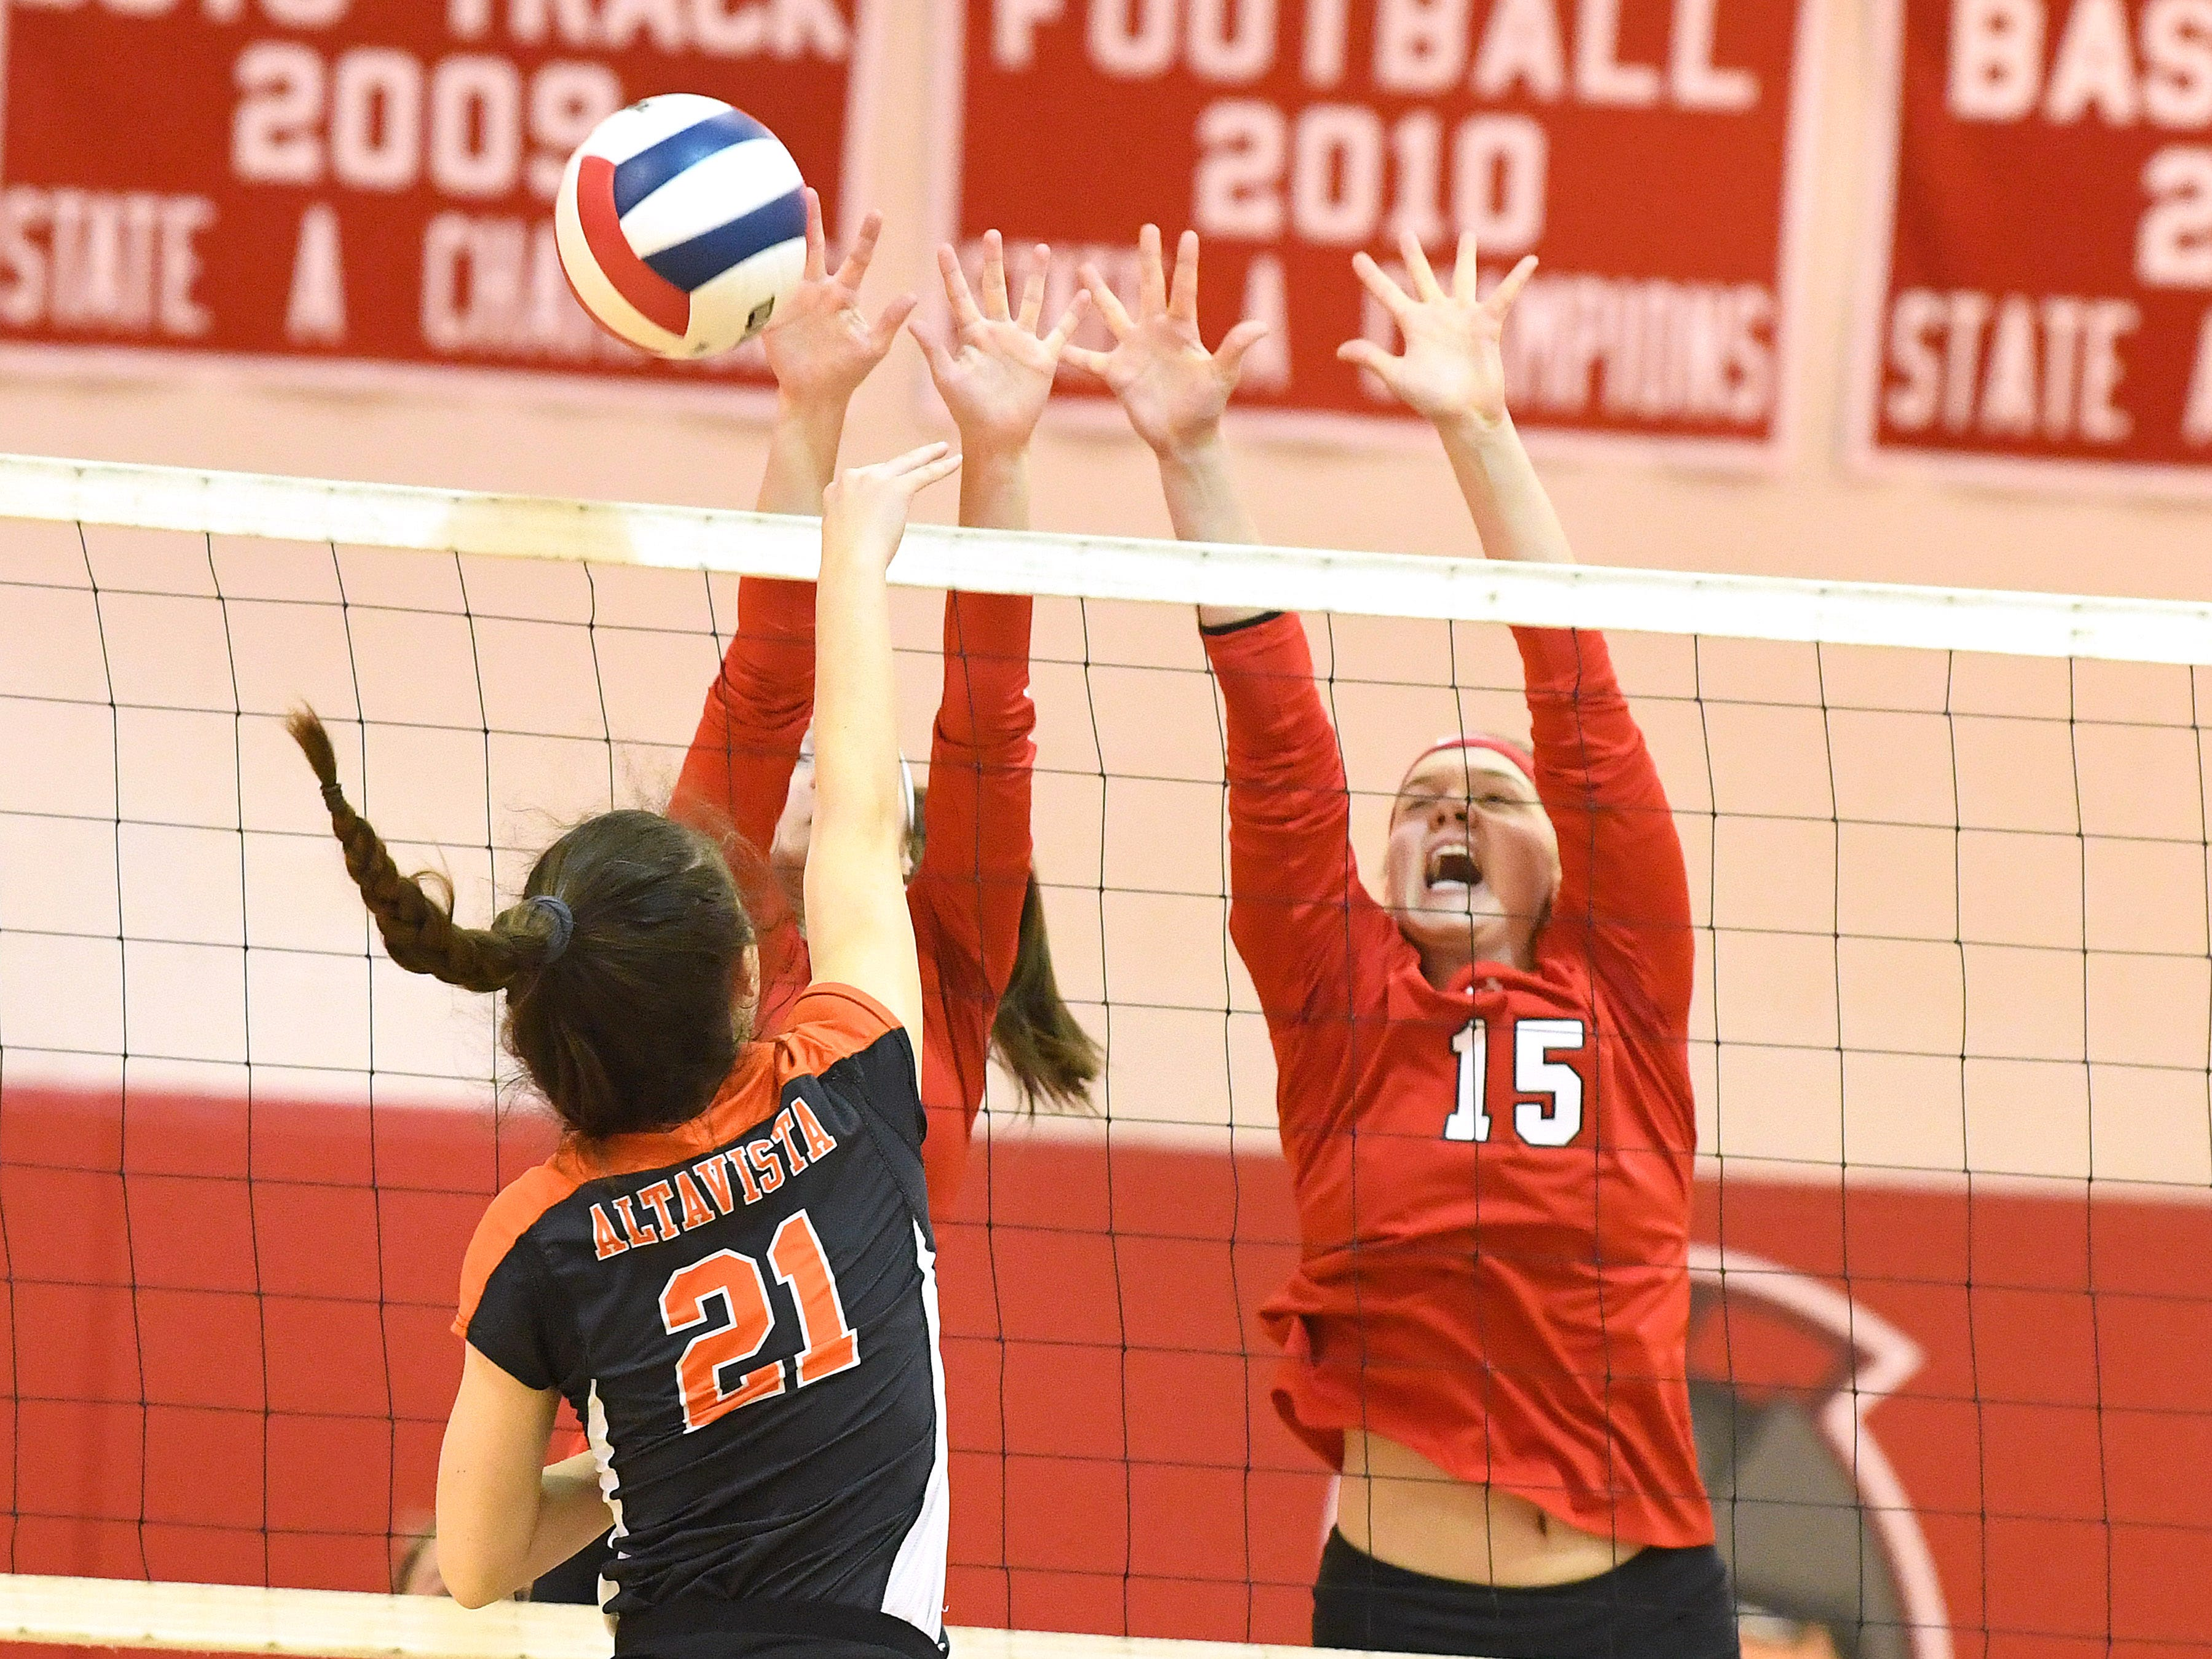 Riverheads' Eva Frederick tries to block a hit by Altavista's Madeline Tweedy at the net during the Region 1B volleyball championship played in Greenville on Wednesday, Nov. 7, 2018.